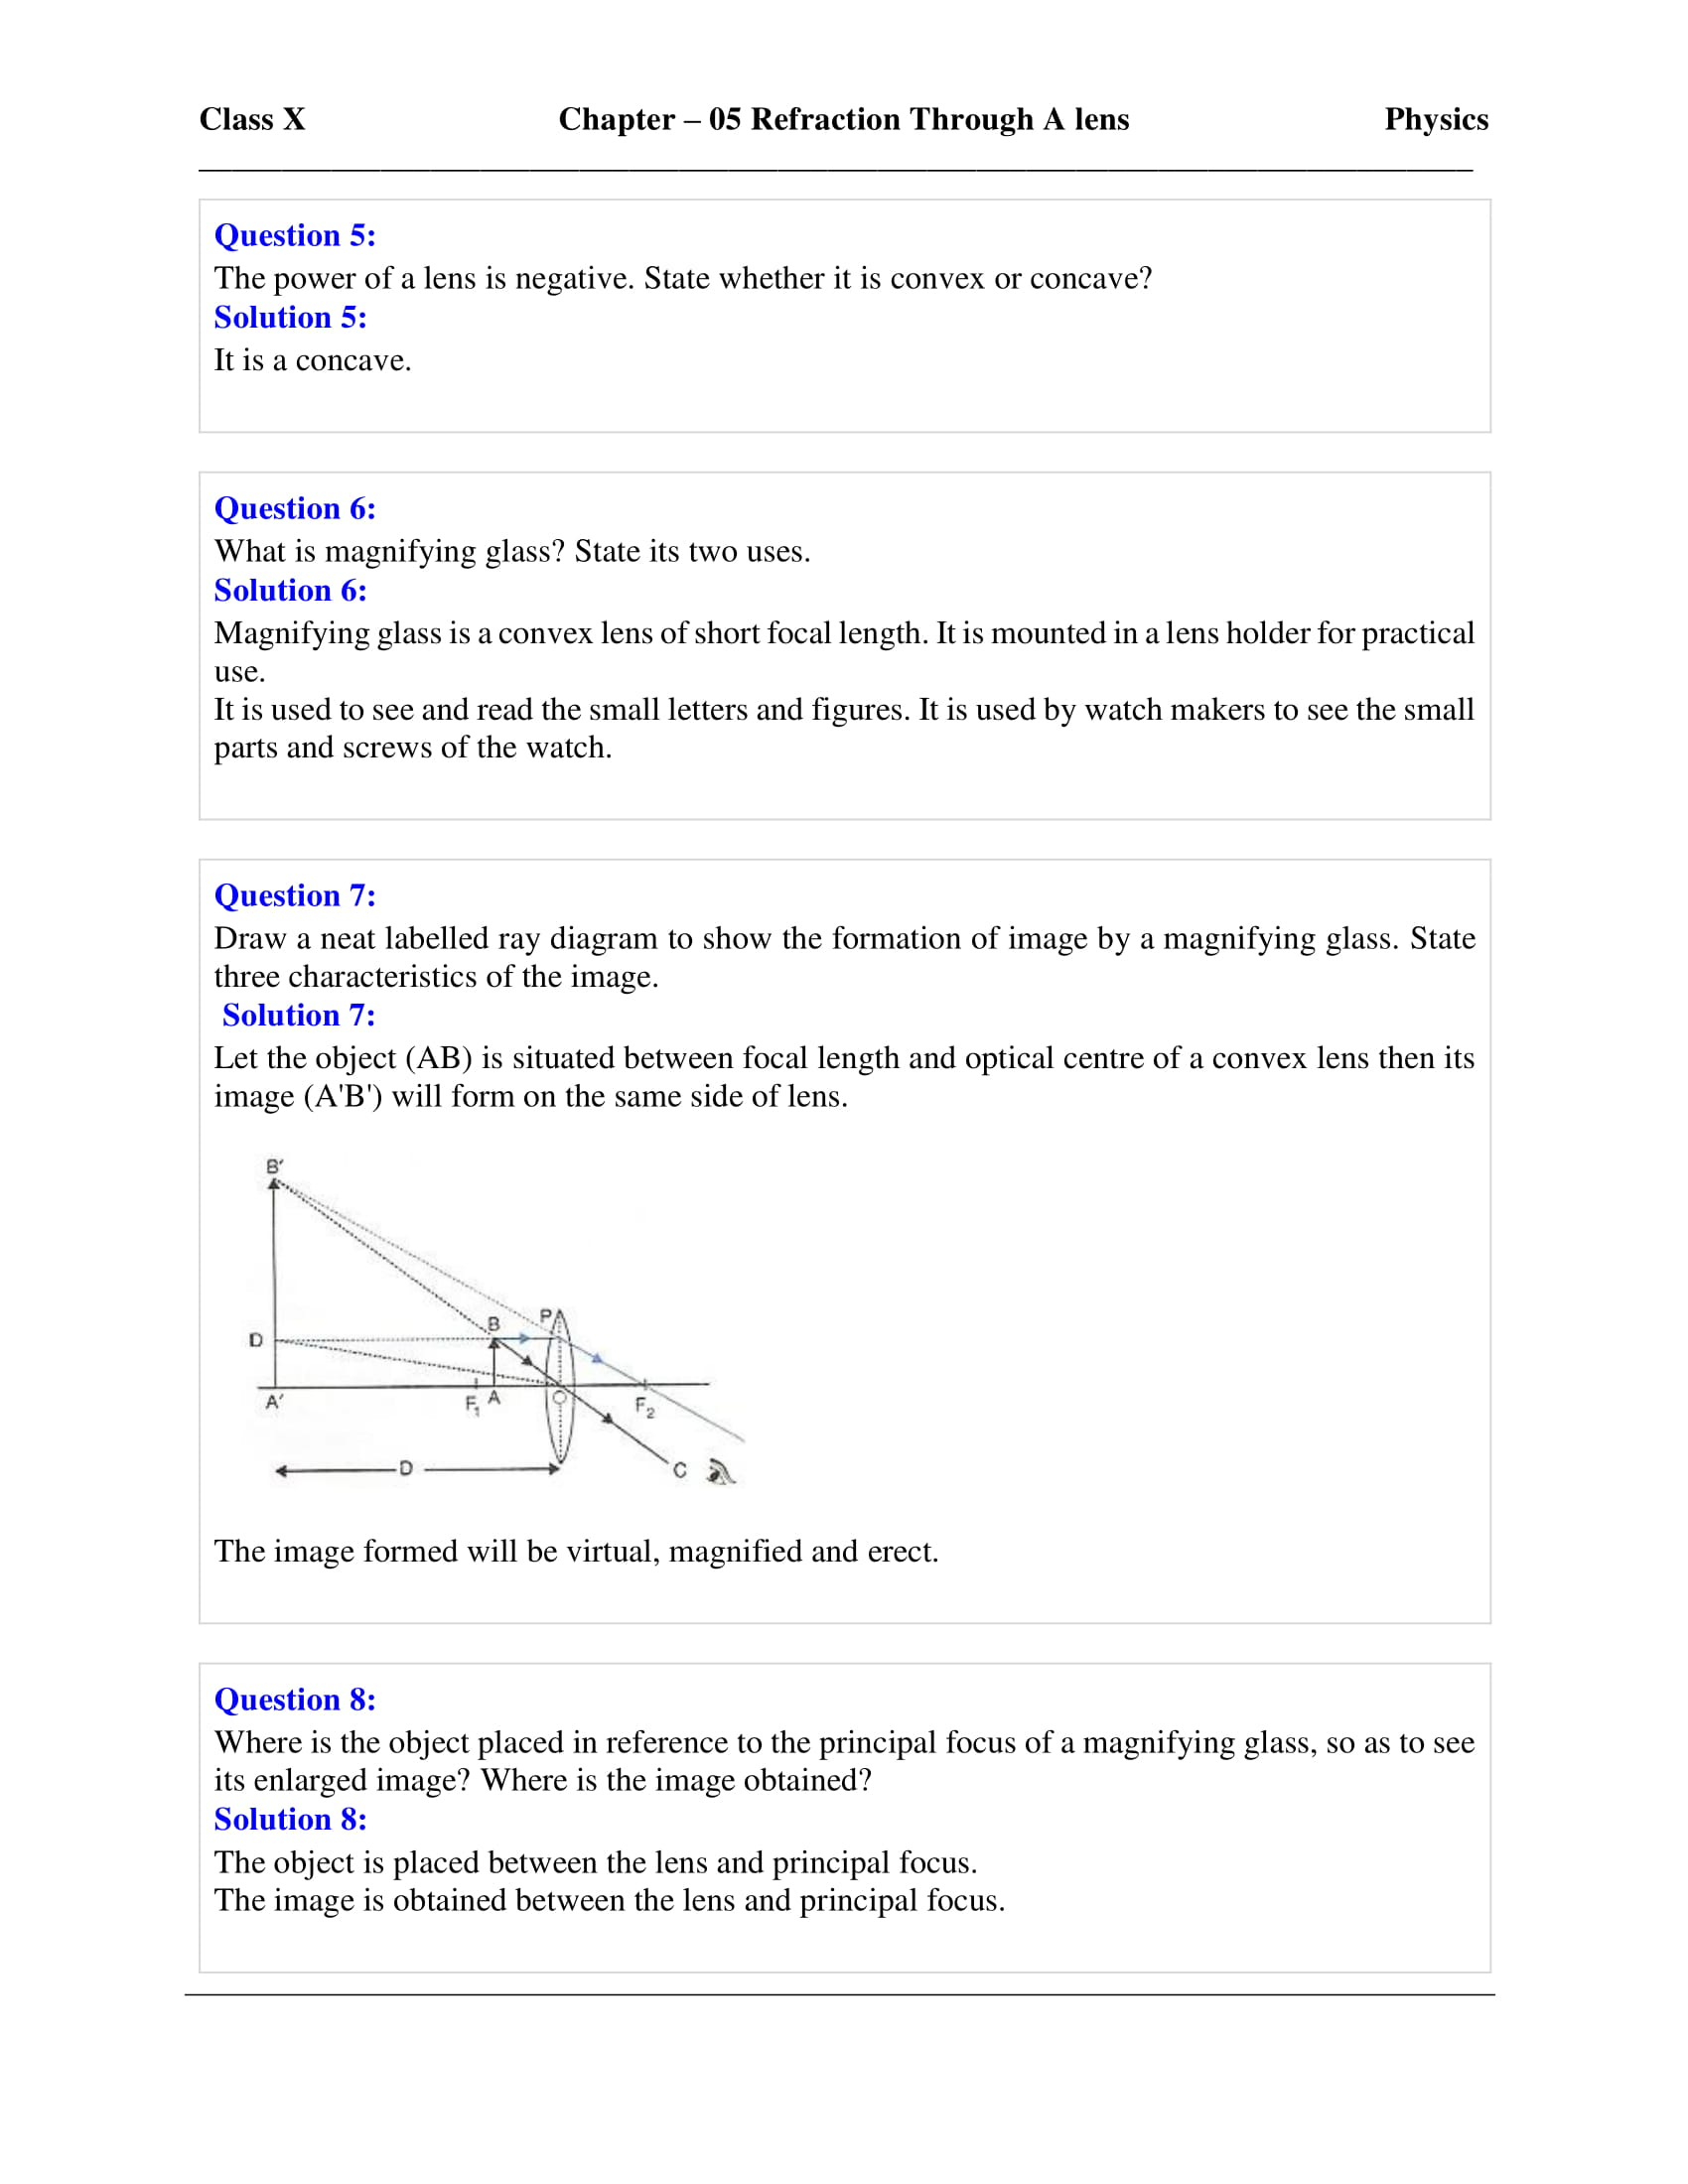 icse-selina-physics-solutions-class-10-chapter-5-refraction-through-a-lens-33